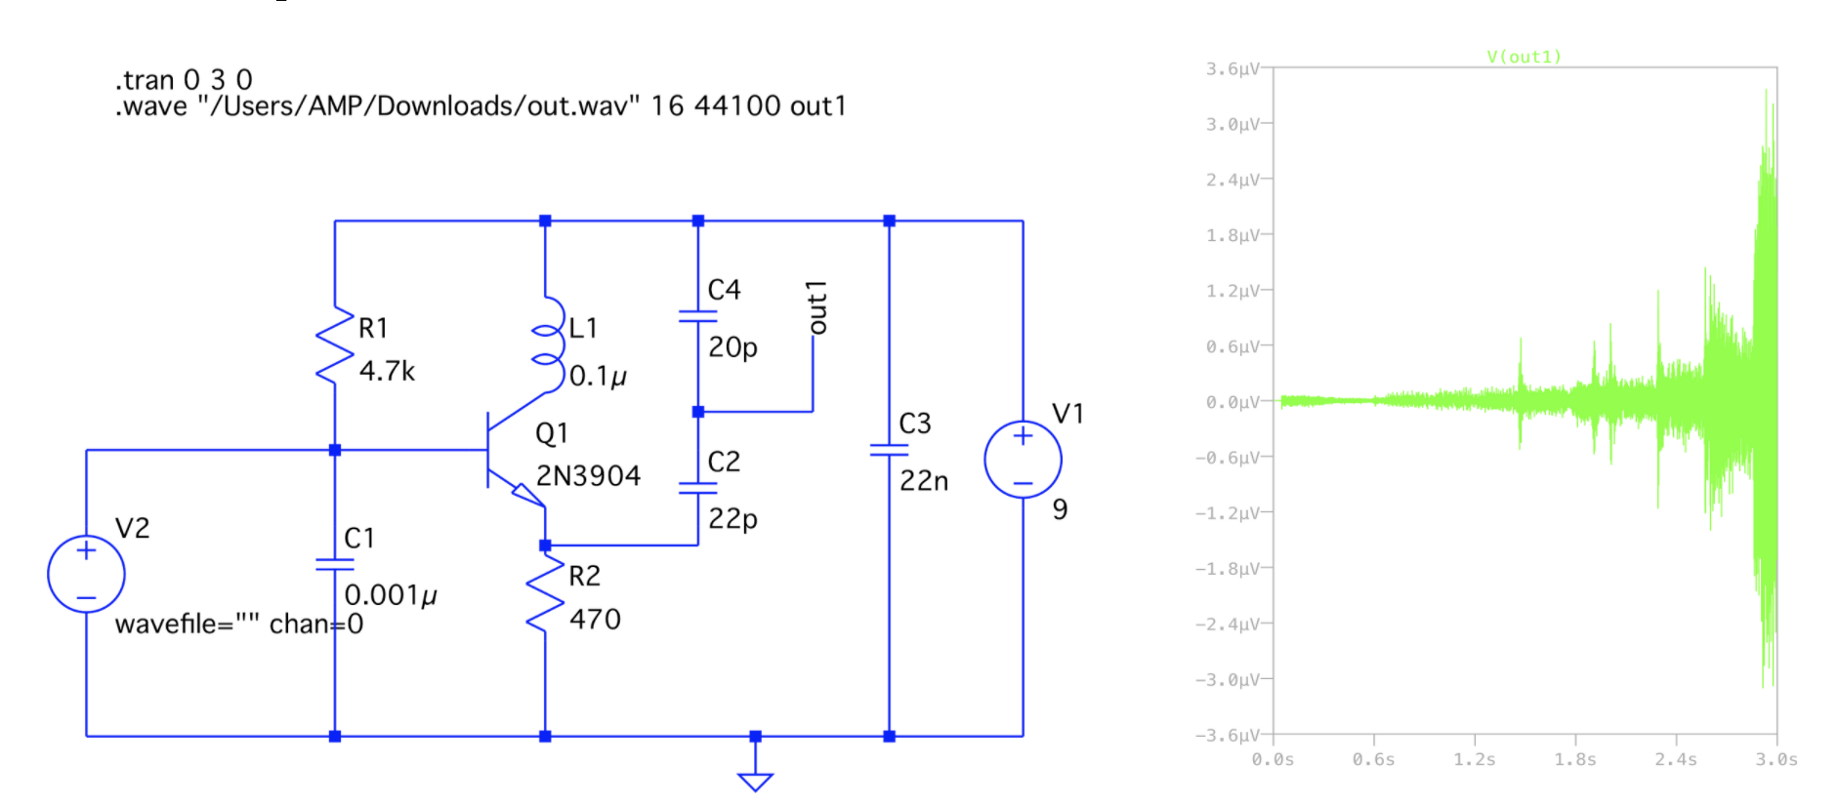 hight resolution of circuit diagram drawn in ltspice with corresponding tran waveform